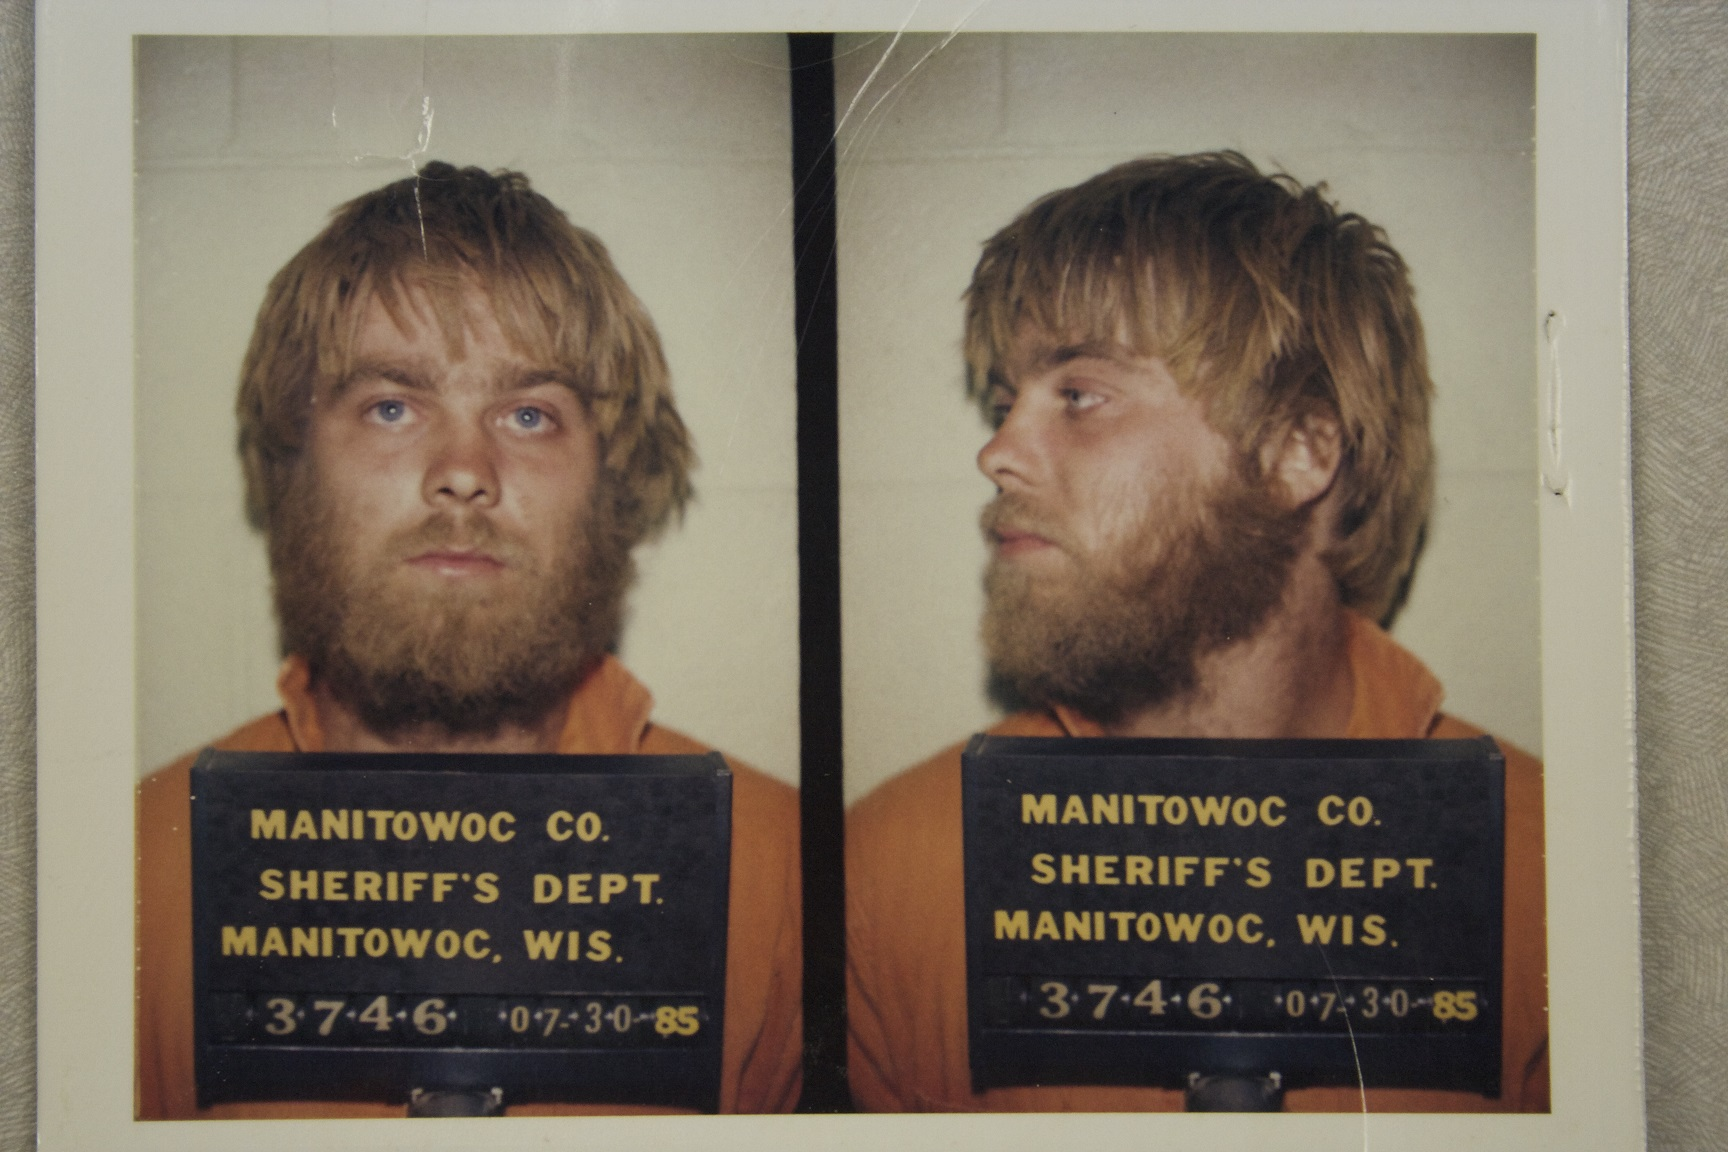 Making a Murderer is coming back. Here's all that's happened since the first season.